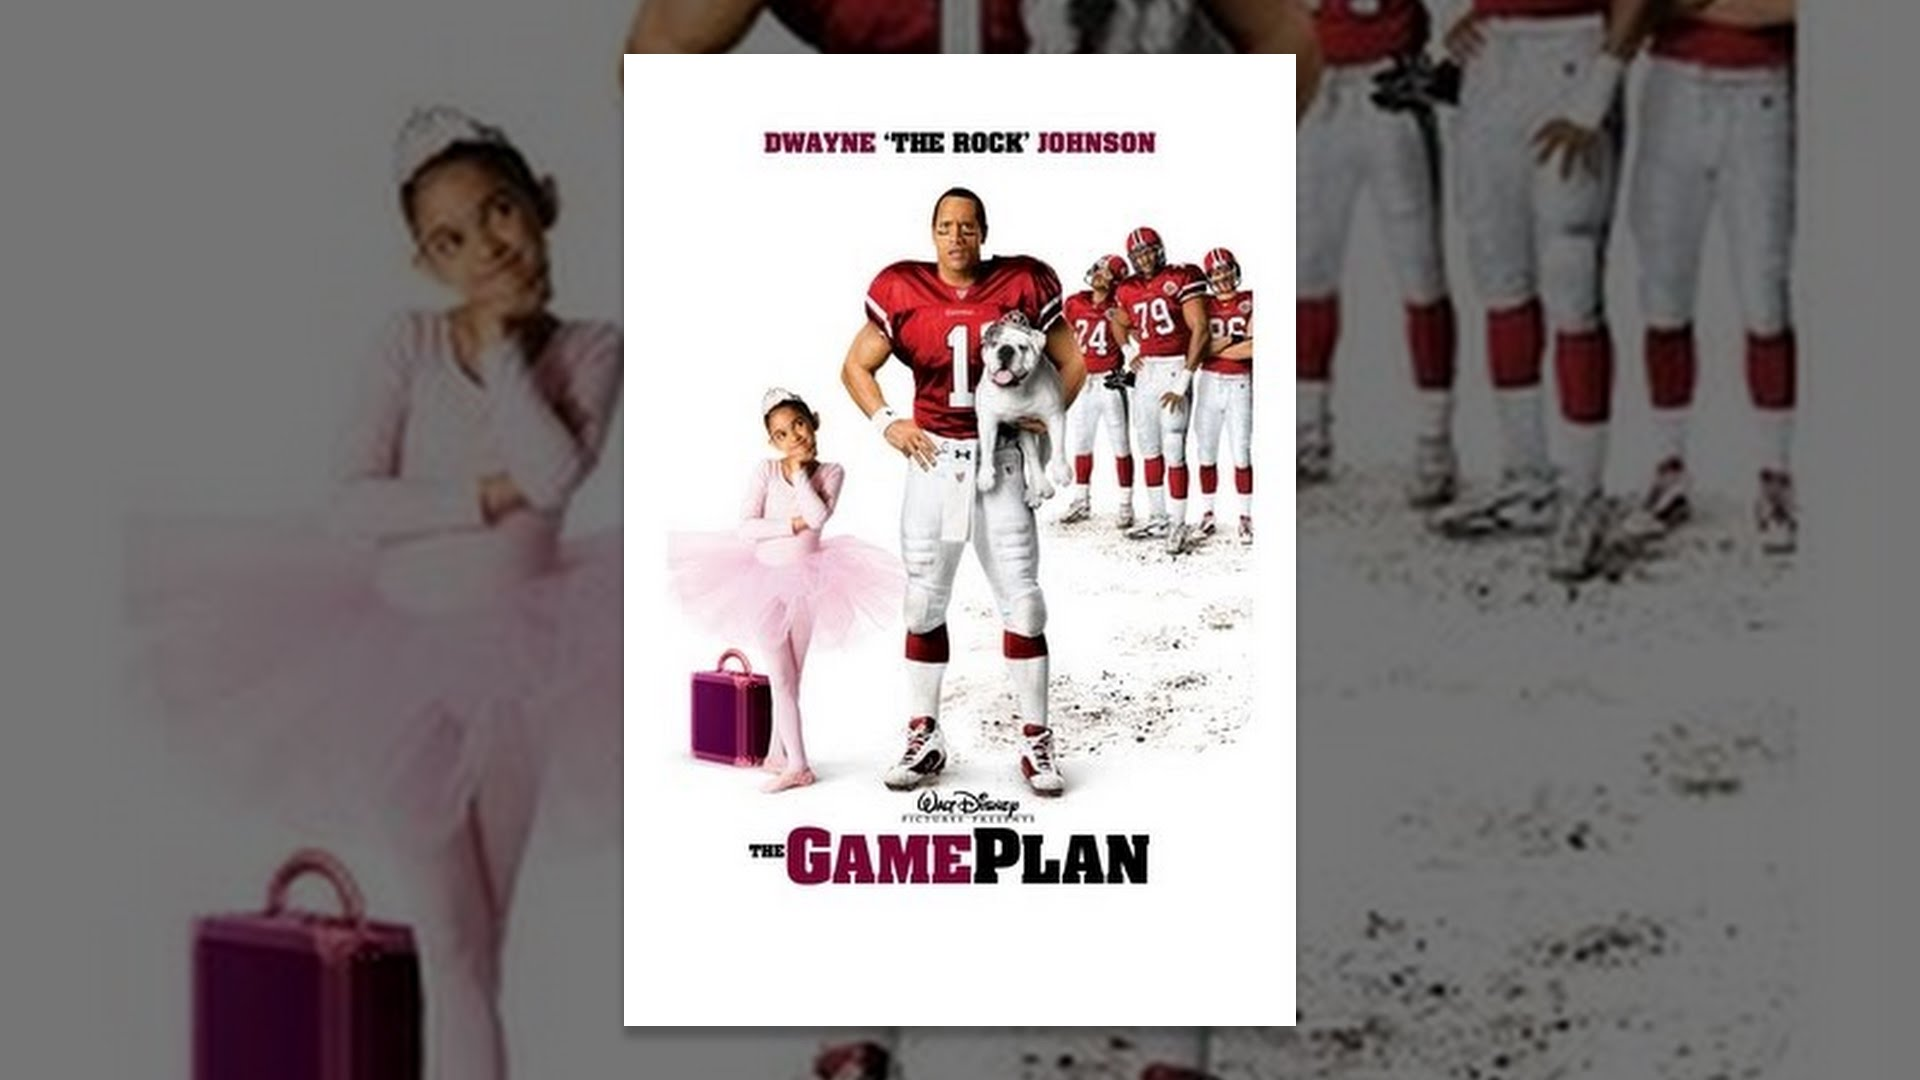 The Game Plan The Rock